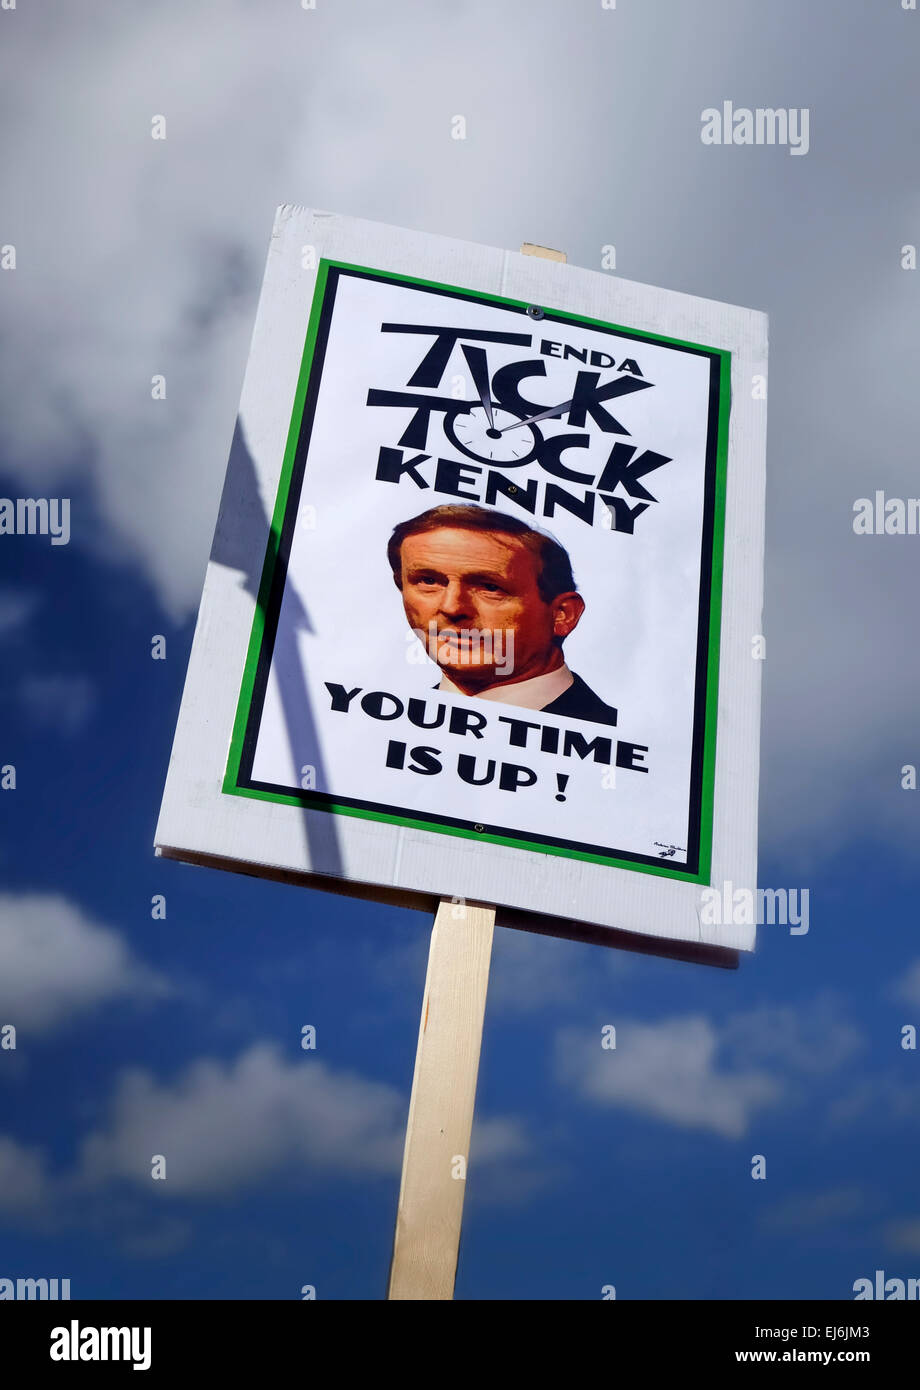 Water march Anti-water charges protest poster warning Enda Kenny (Irish Prime Minister)  that his reign is over. - Stock Image